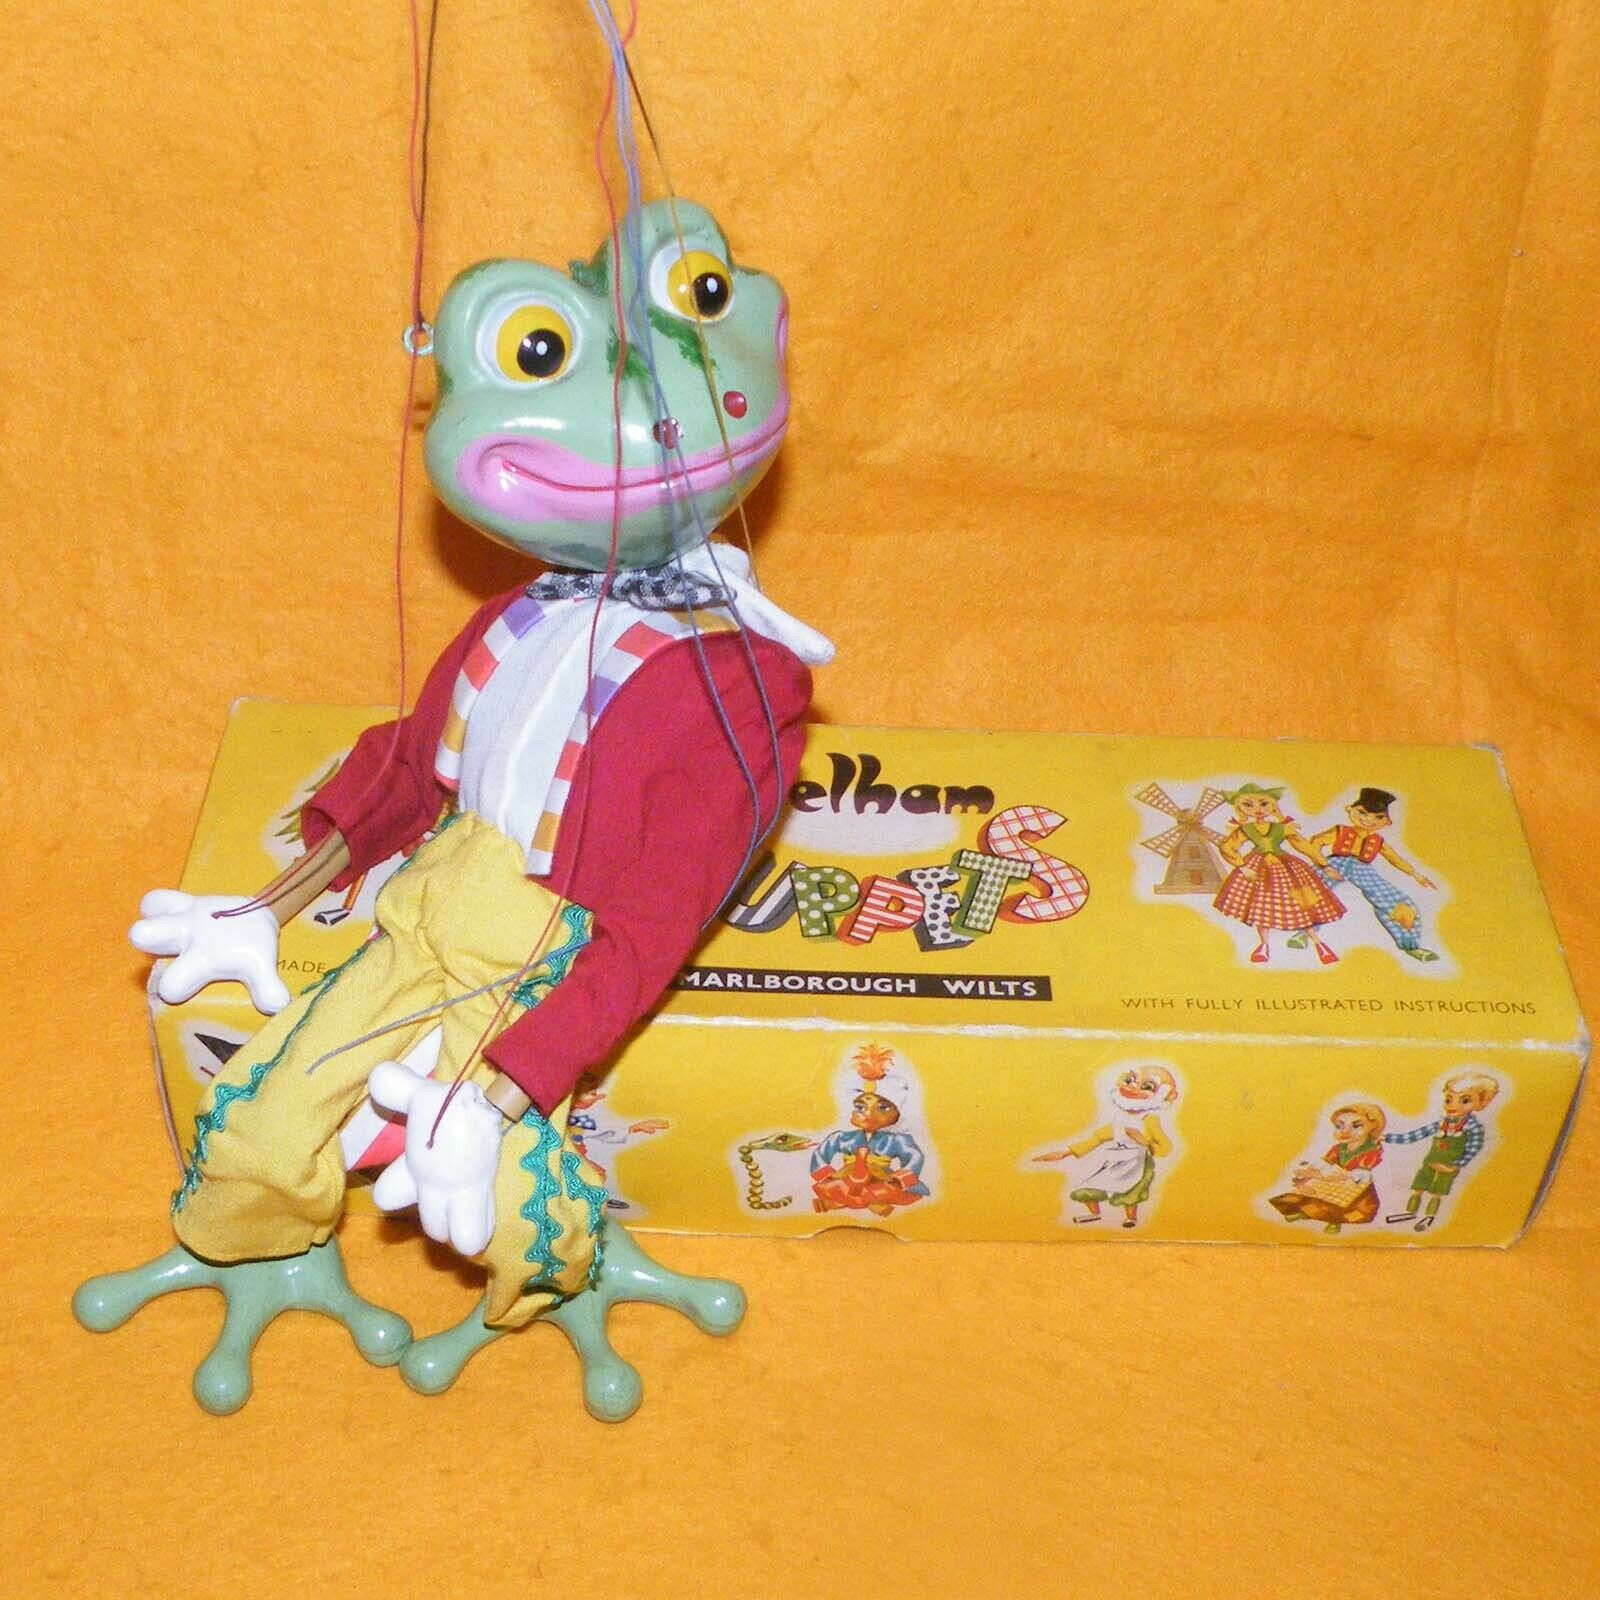 VINTAGE PELHAM PUPPETS FROG SL 63 (ANIMAL) HAND MADE PUPPET BOXED RARE